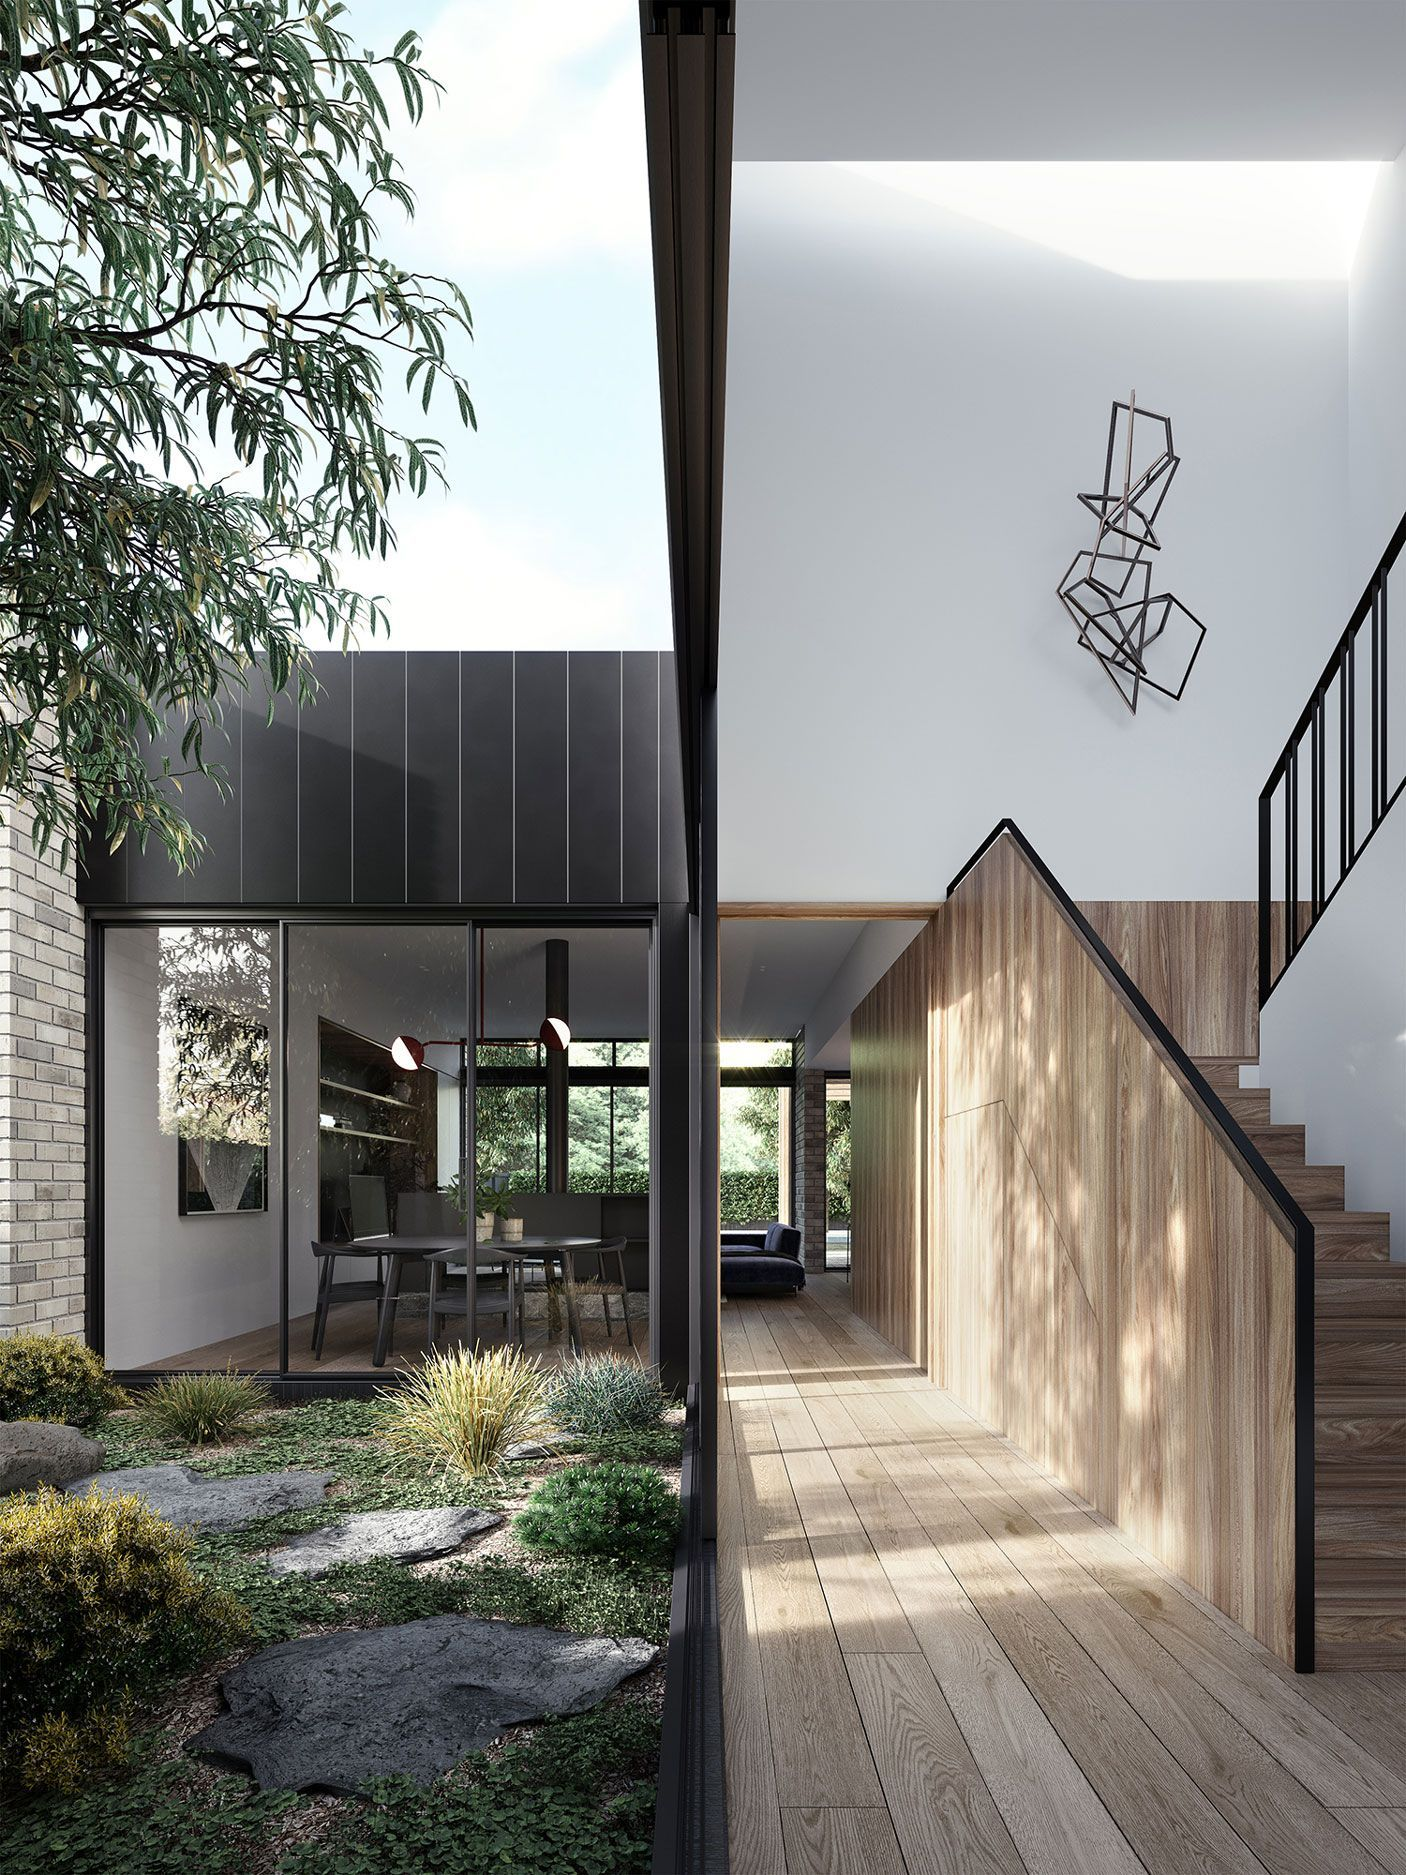 Ruum A Redefined Path To Limited Edition Architect Designed Homes The Local Project Housegoals A New In 2020 Architect Design Architect Design House Architecture